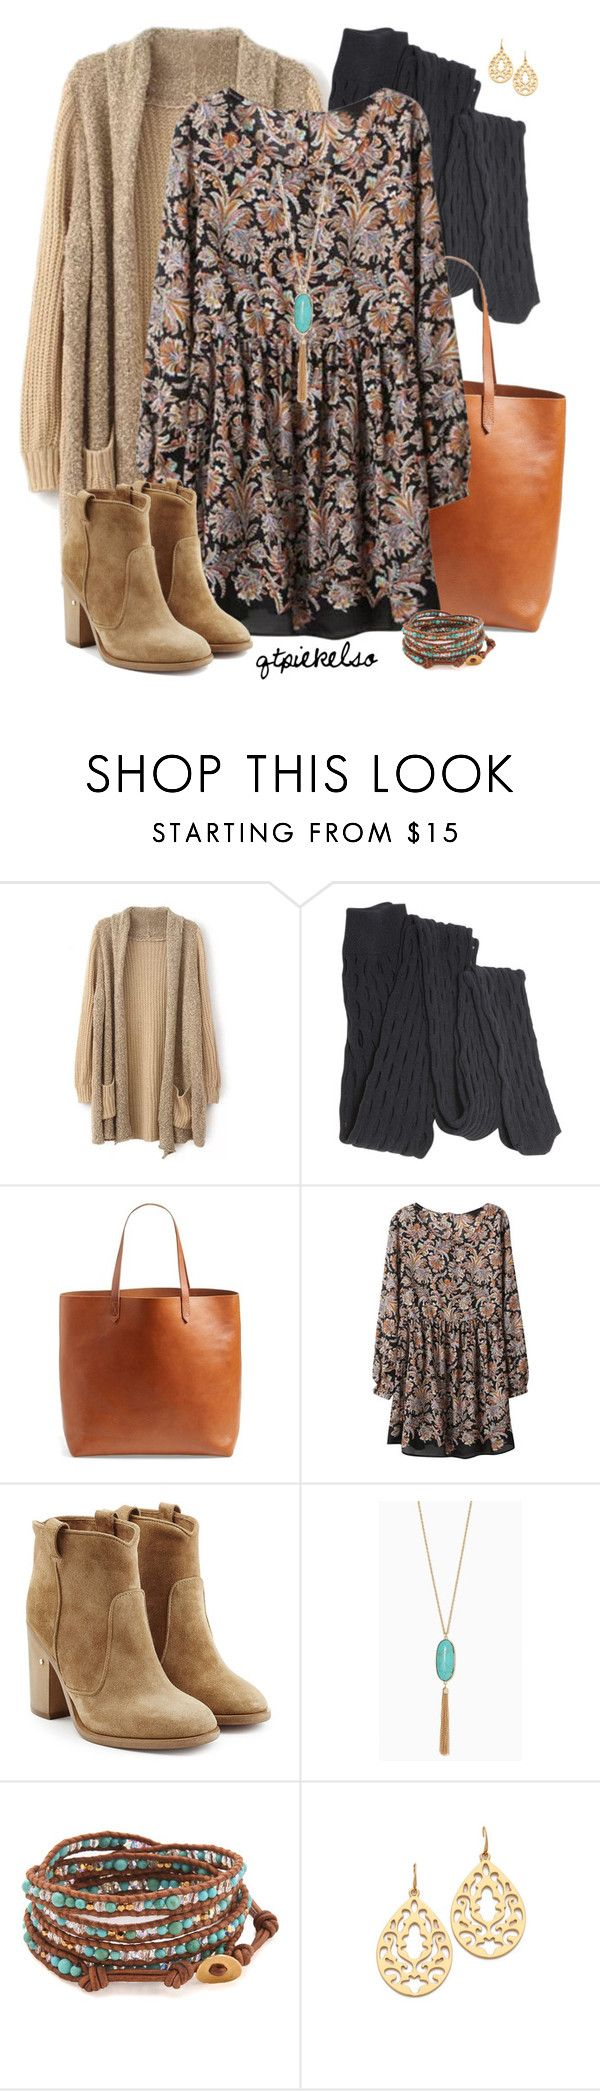 """Boho Booties"" by qtpiekelso ❤ liked on Polyvore featuring Proenza Schouler, Madewell, Laurence Dacade, Chan Luu and Juicy Couture"